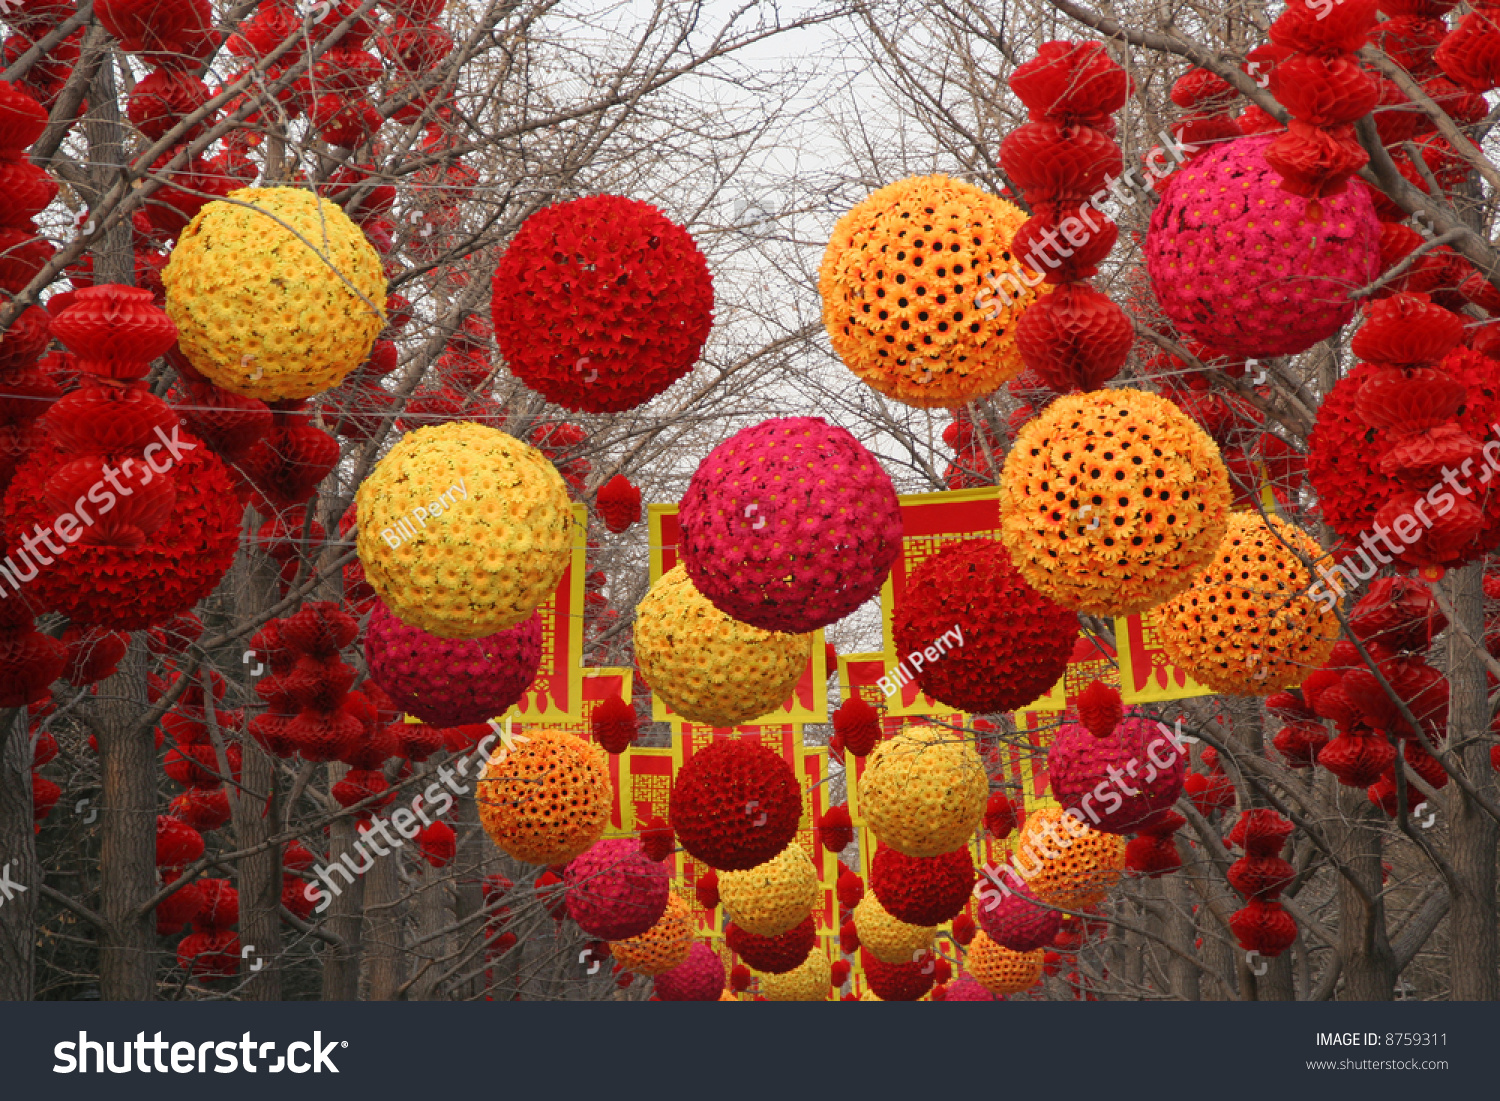 chinese new year decorations ditan park beijing china during lunar new year - Chinese New Year Decorations